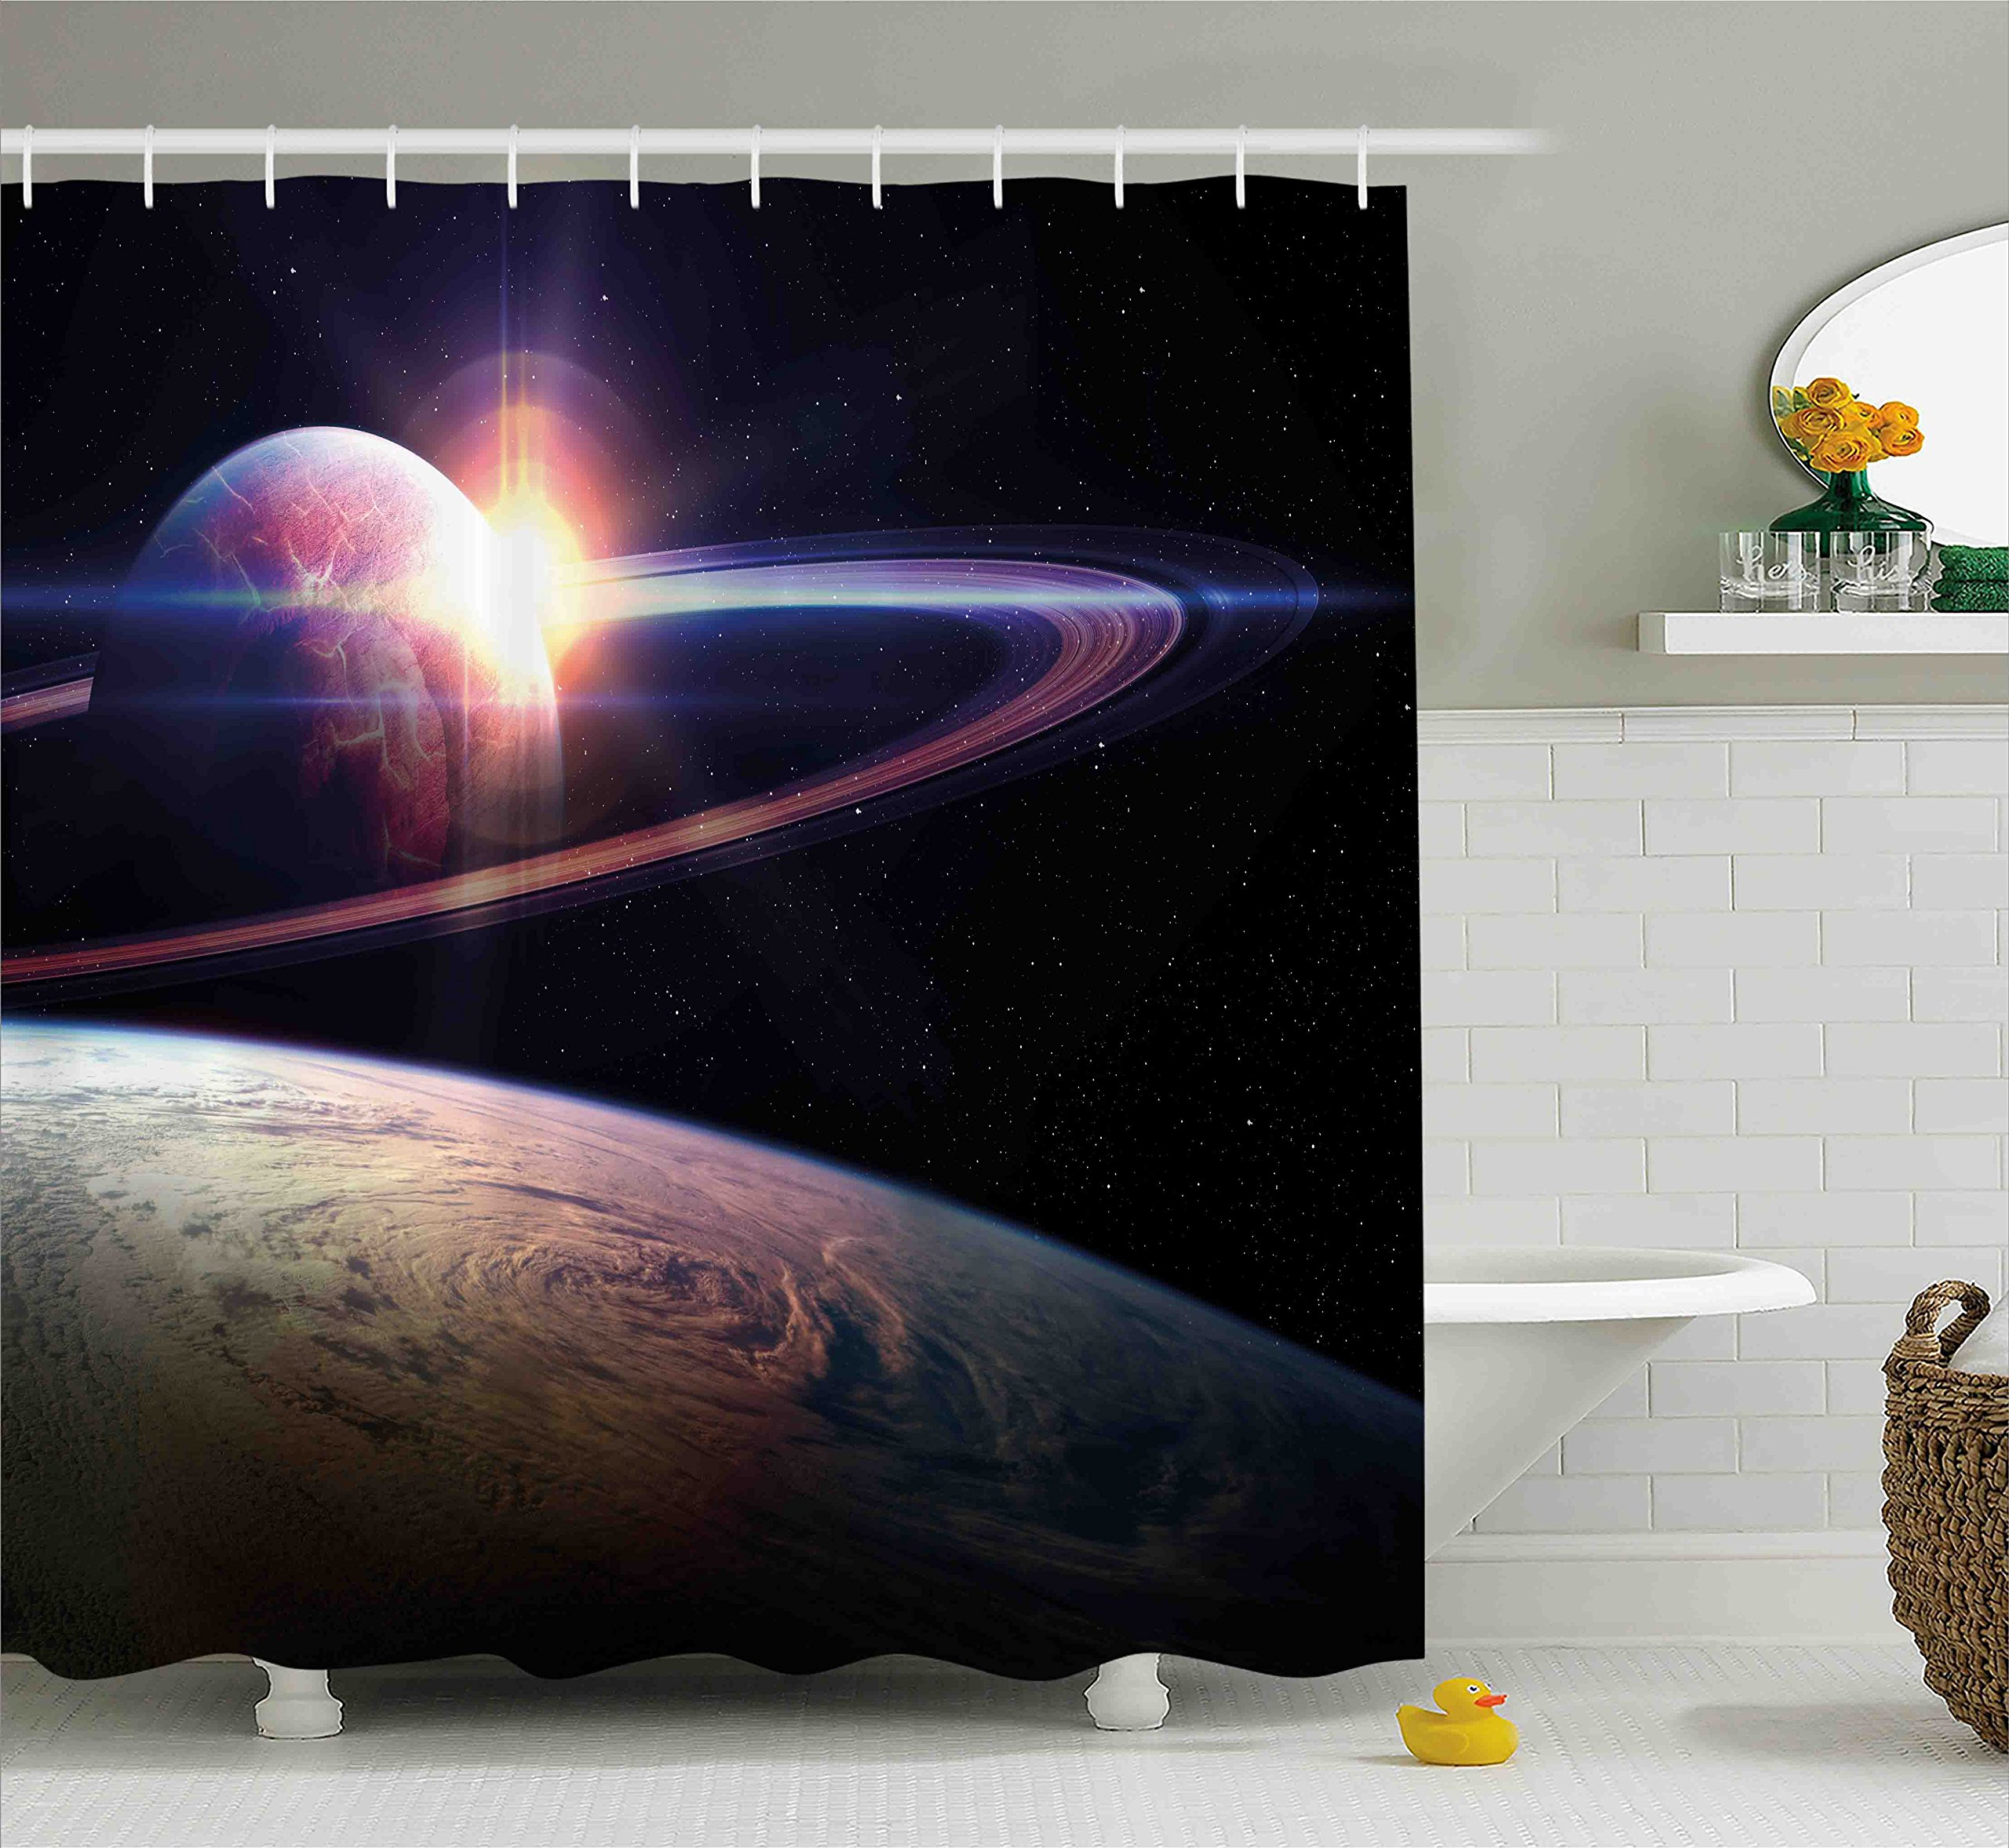 Ambesonne Galaxy Shower Curtain Set, Sunset in Outer Space Universe Saturn View from Planet Earth Atmosphere in Spaceship, Fabric Bathroom Decor with Hooks, 75 Inches Long, Black Blue